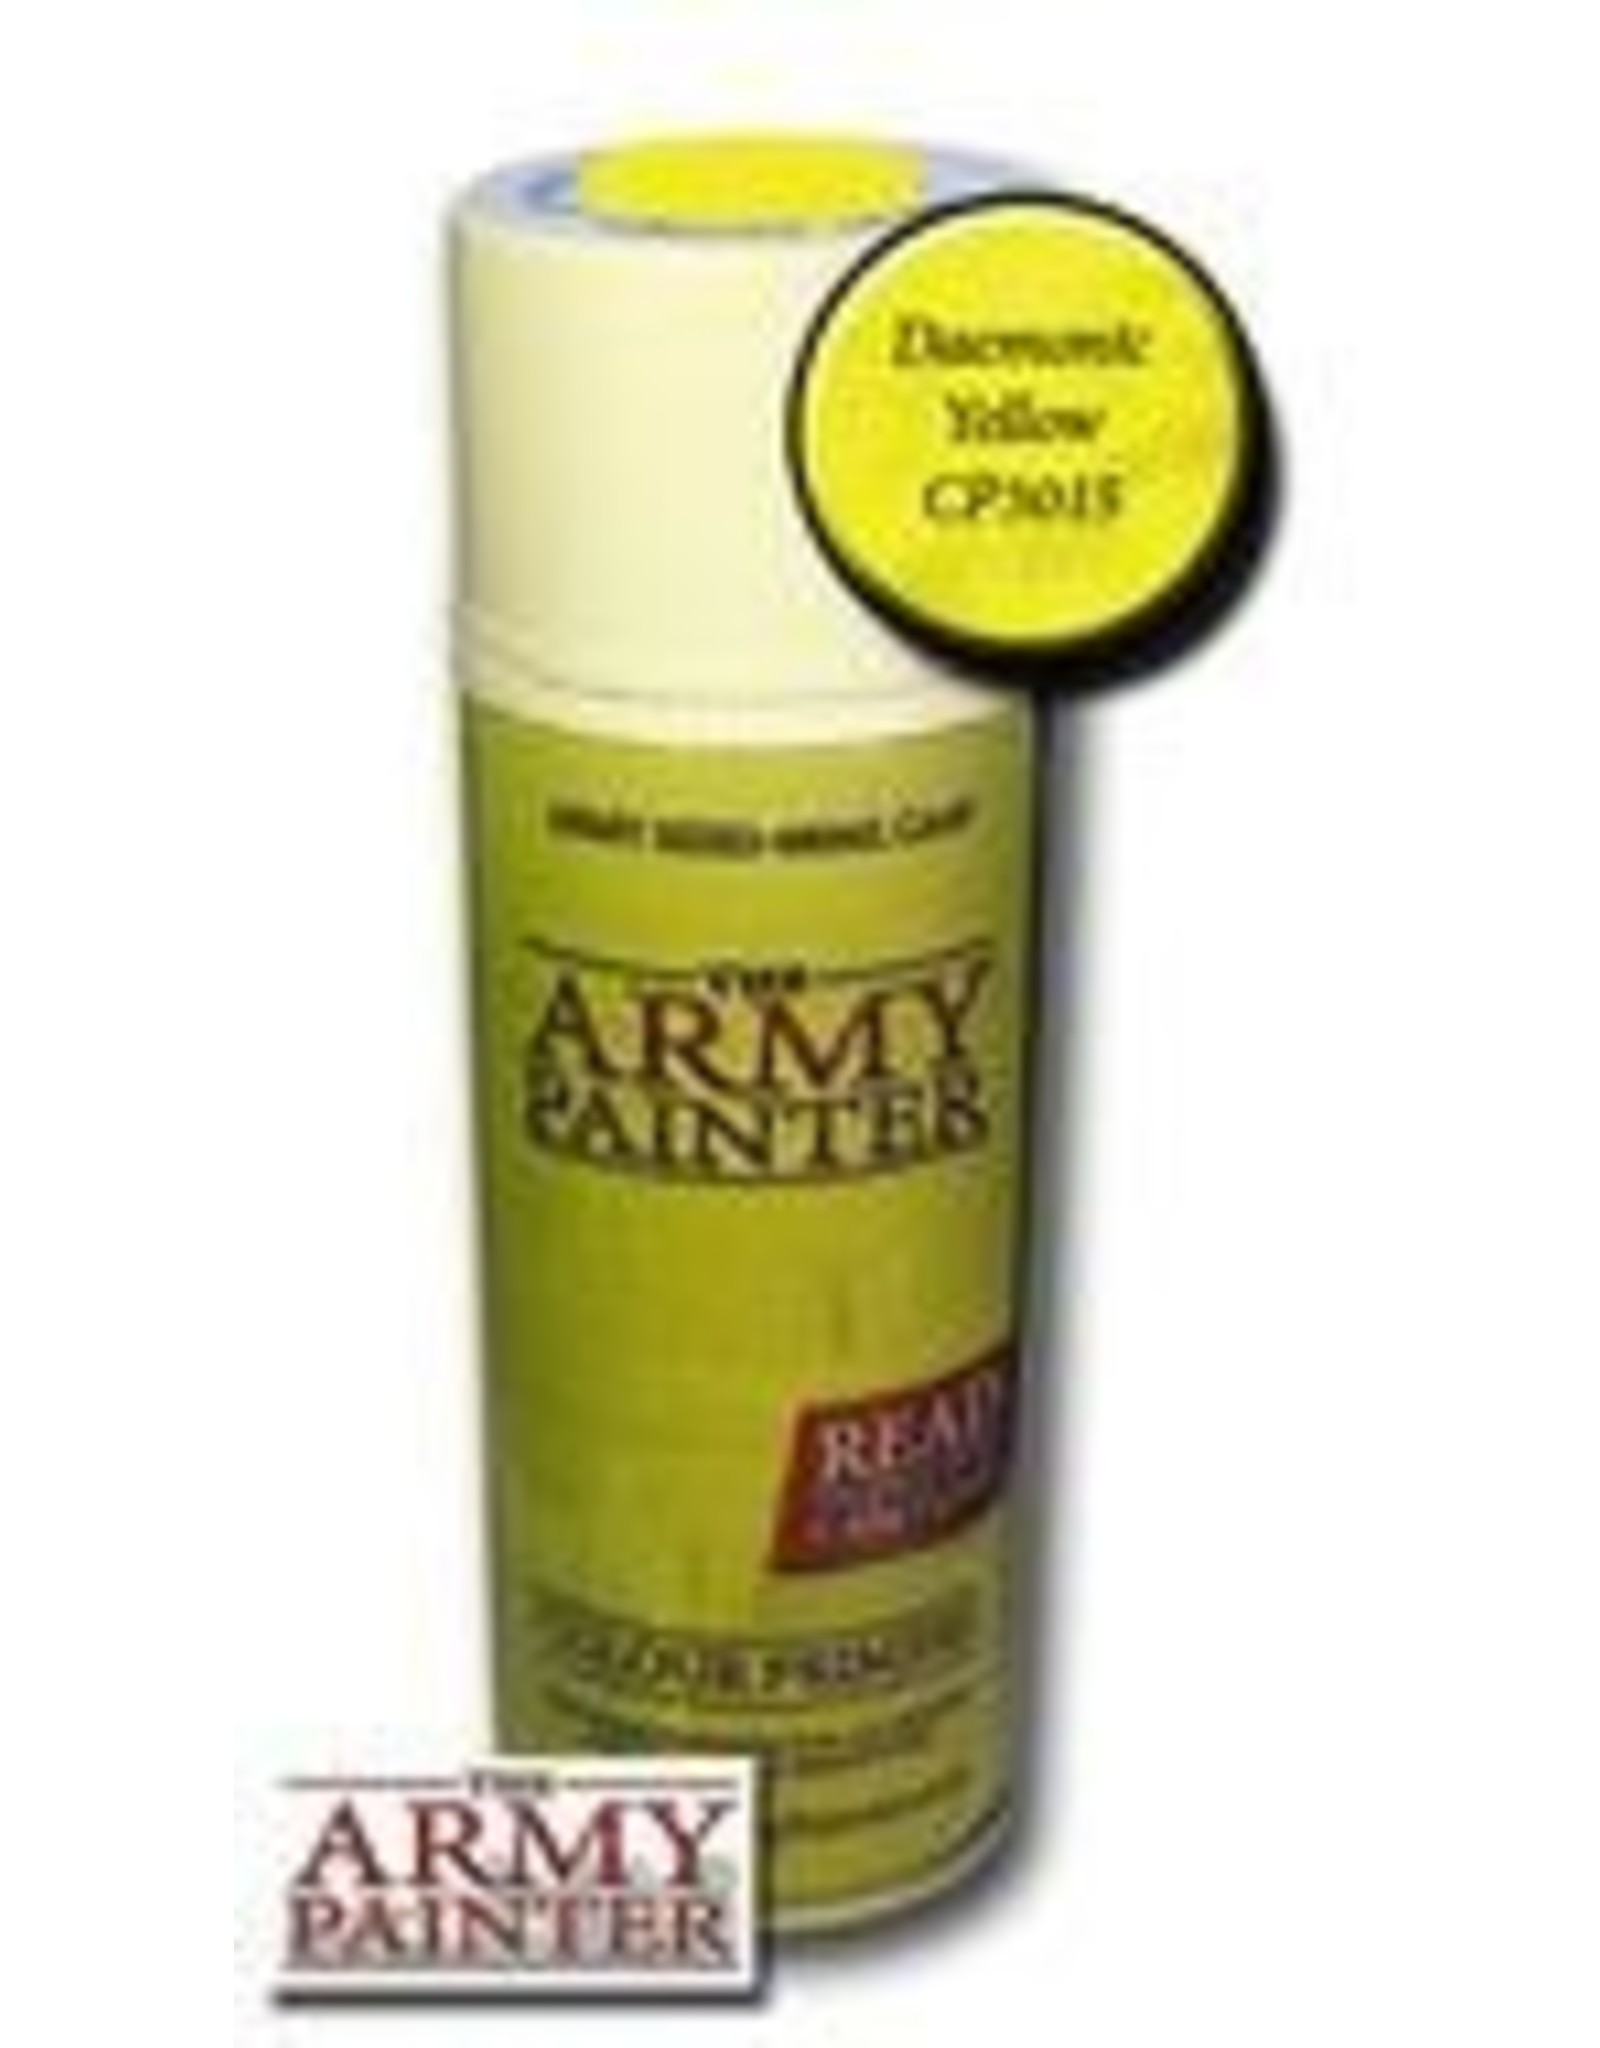 Army Painter Colour Primer: Daemonic Yellow